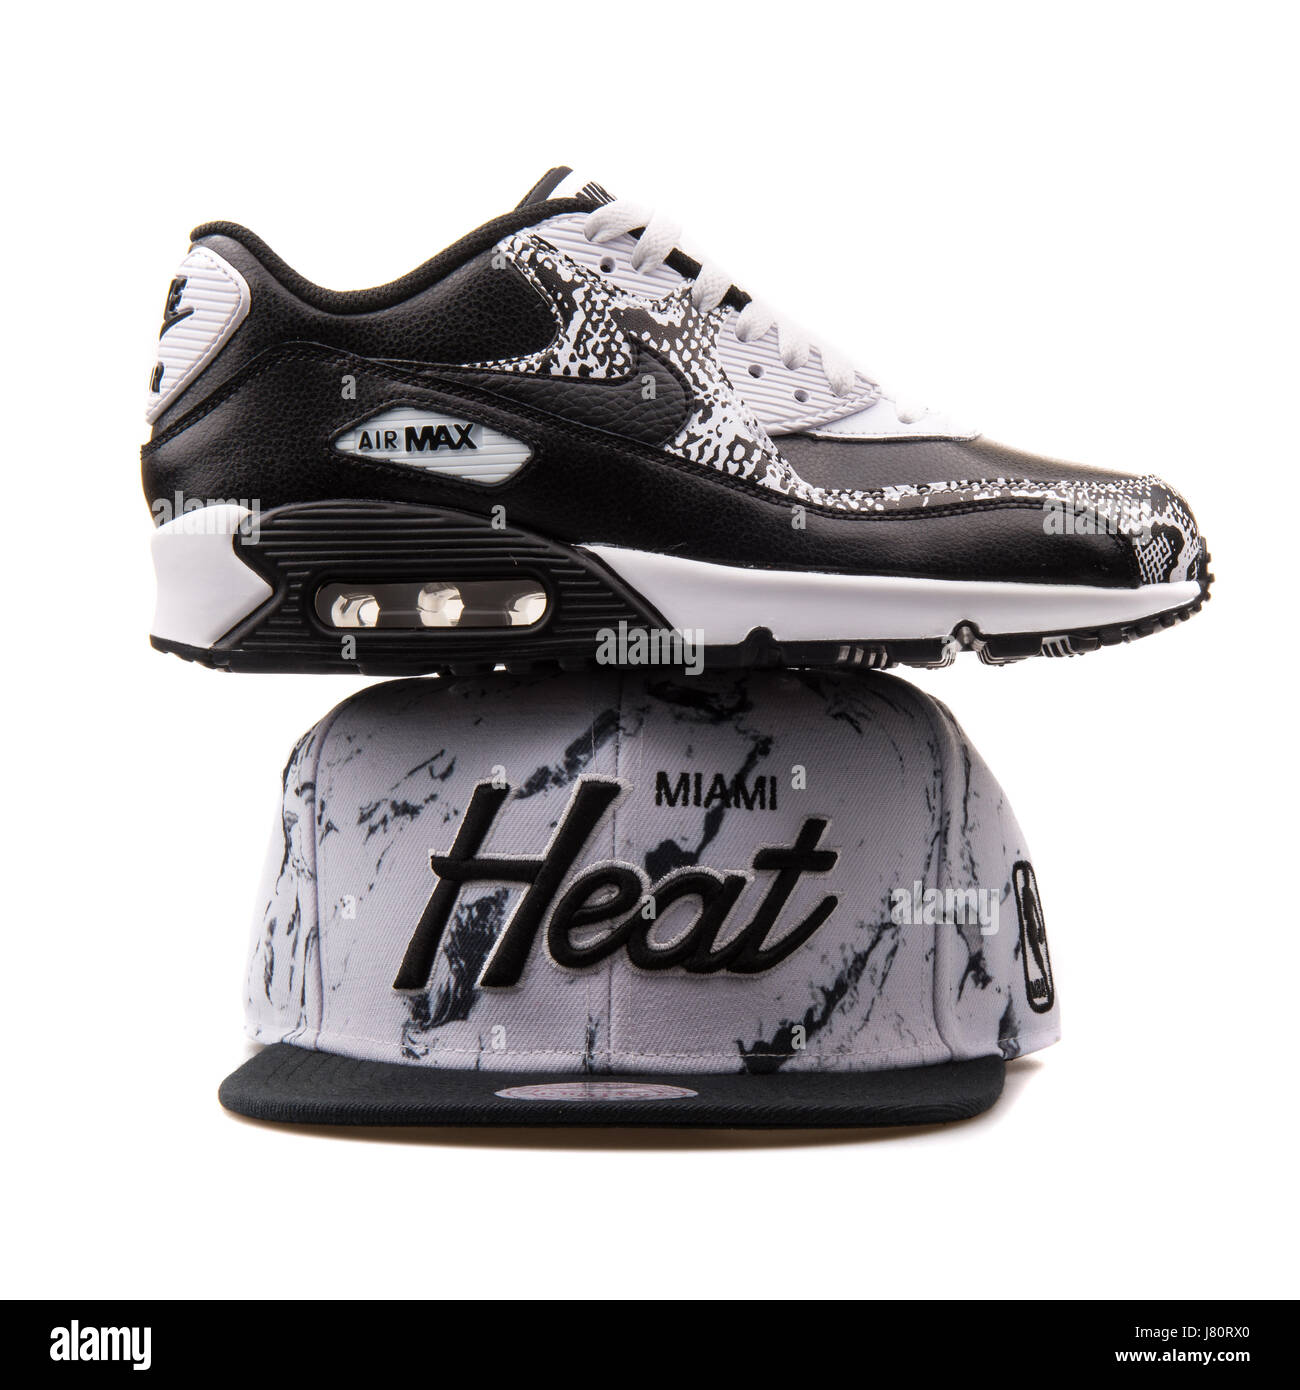 Black and White Nike Air Max sneaker and Black and White Mitchell & Ness  Miami Heat Cap